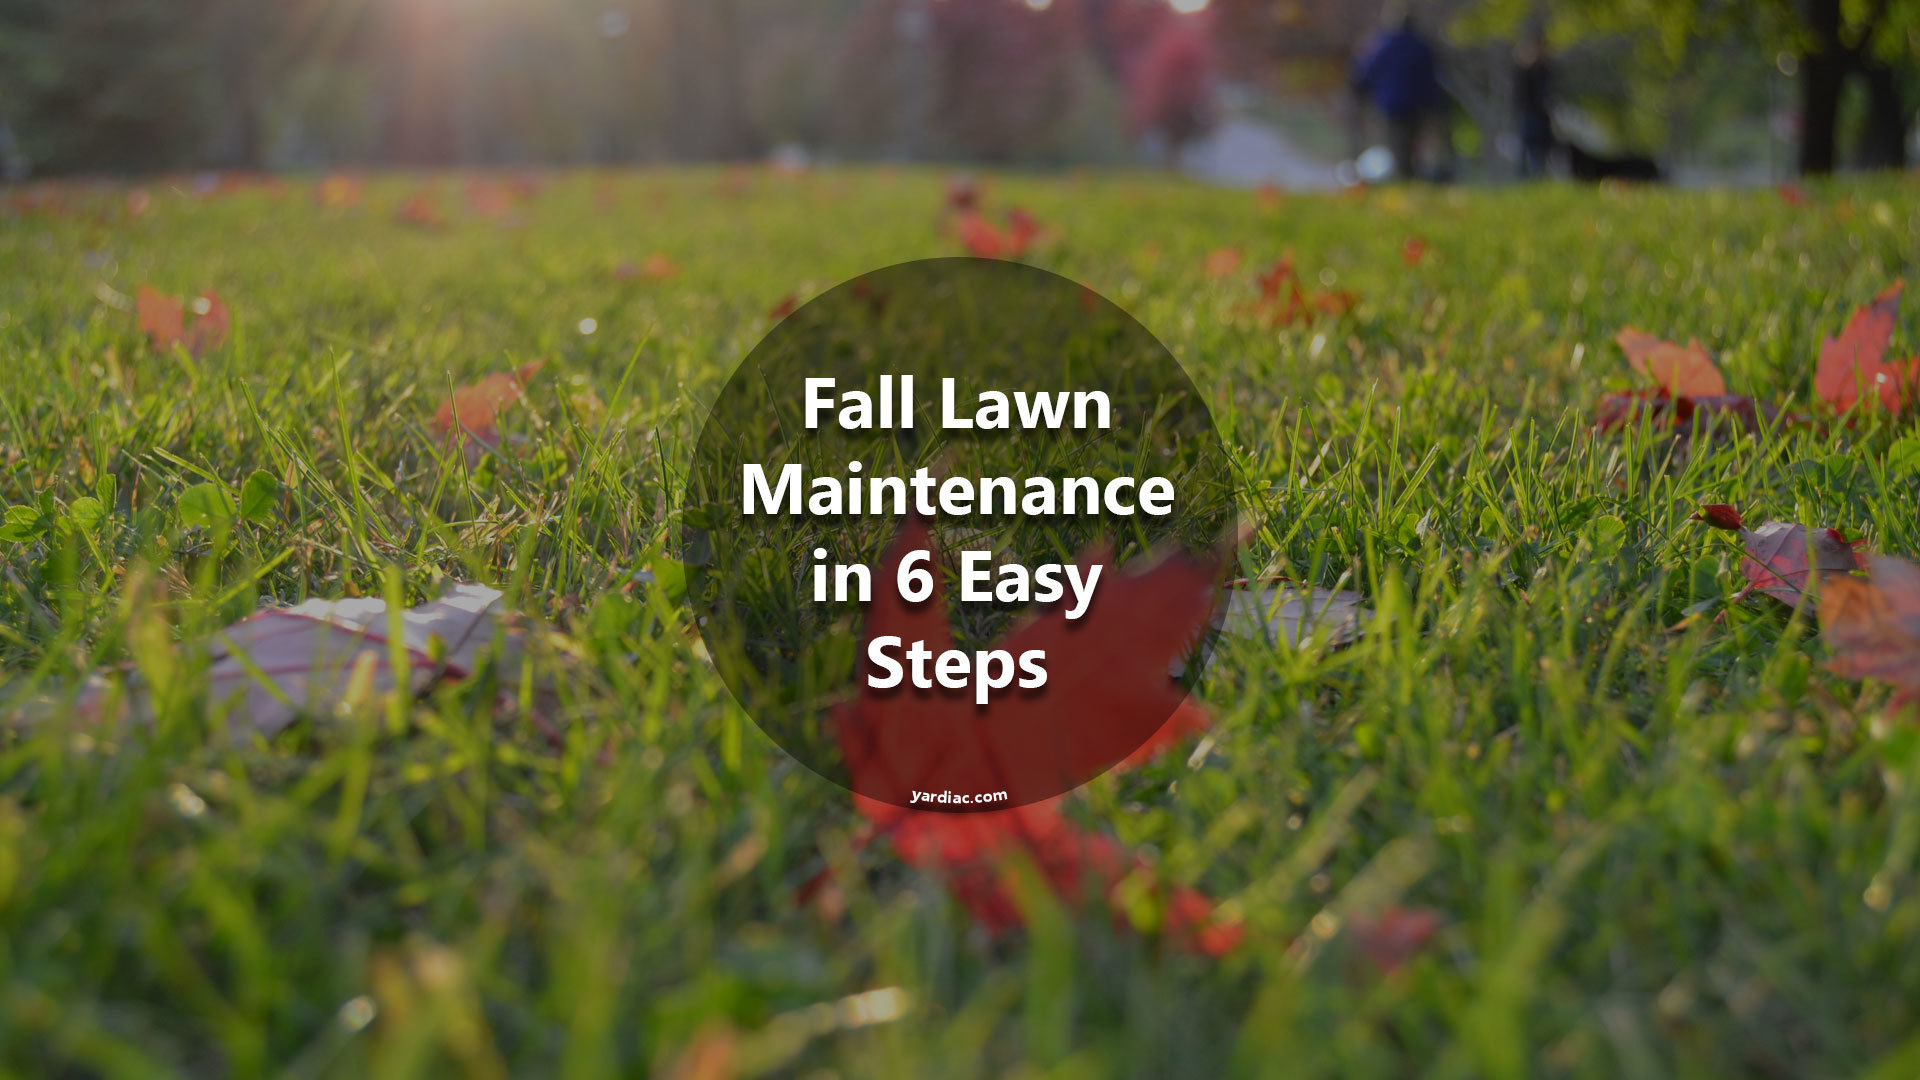 Fall Lawn Maintenance in 6 Easy Steps